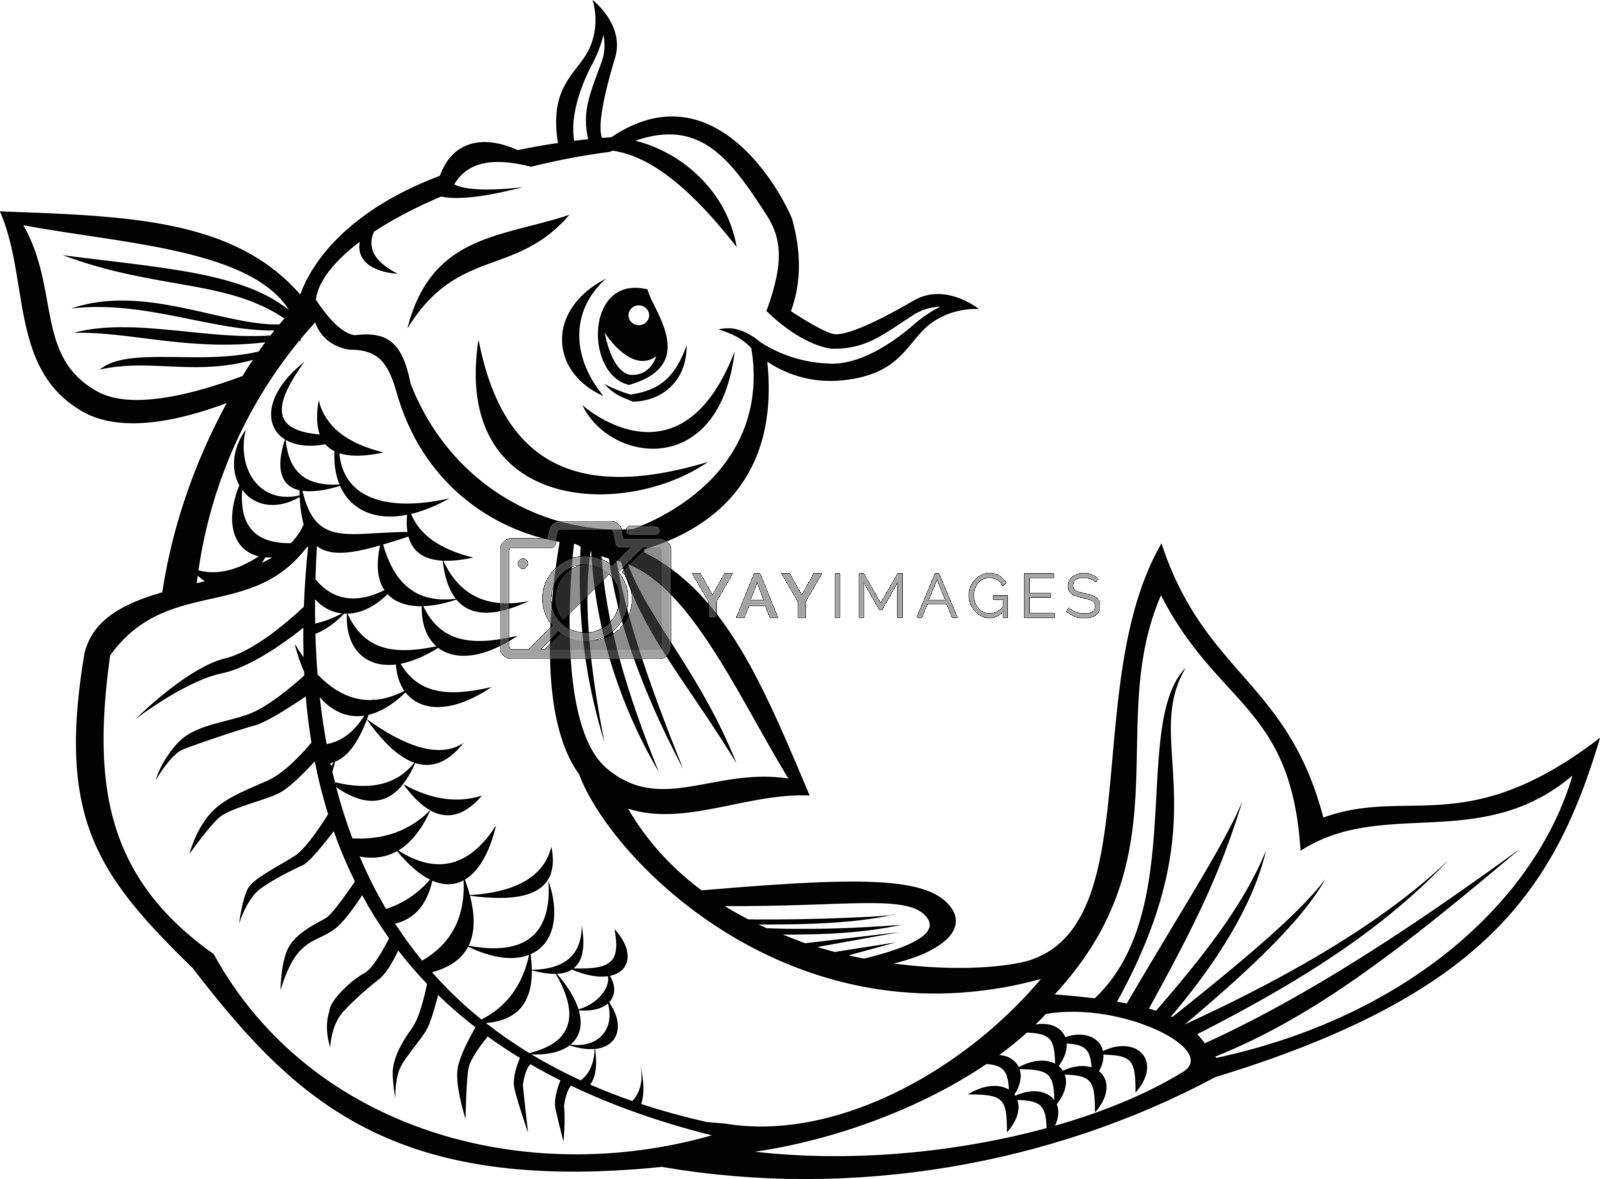 Cartoon style illustration of a jinli, Koi or nishikigoi fish, colored varieties of the Amur carp Cyprinus rubrofuscus, jumping up on isolated background done in black and white.